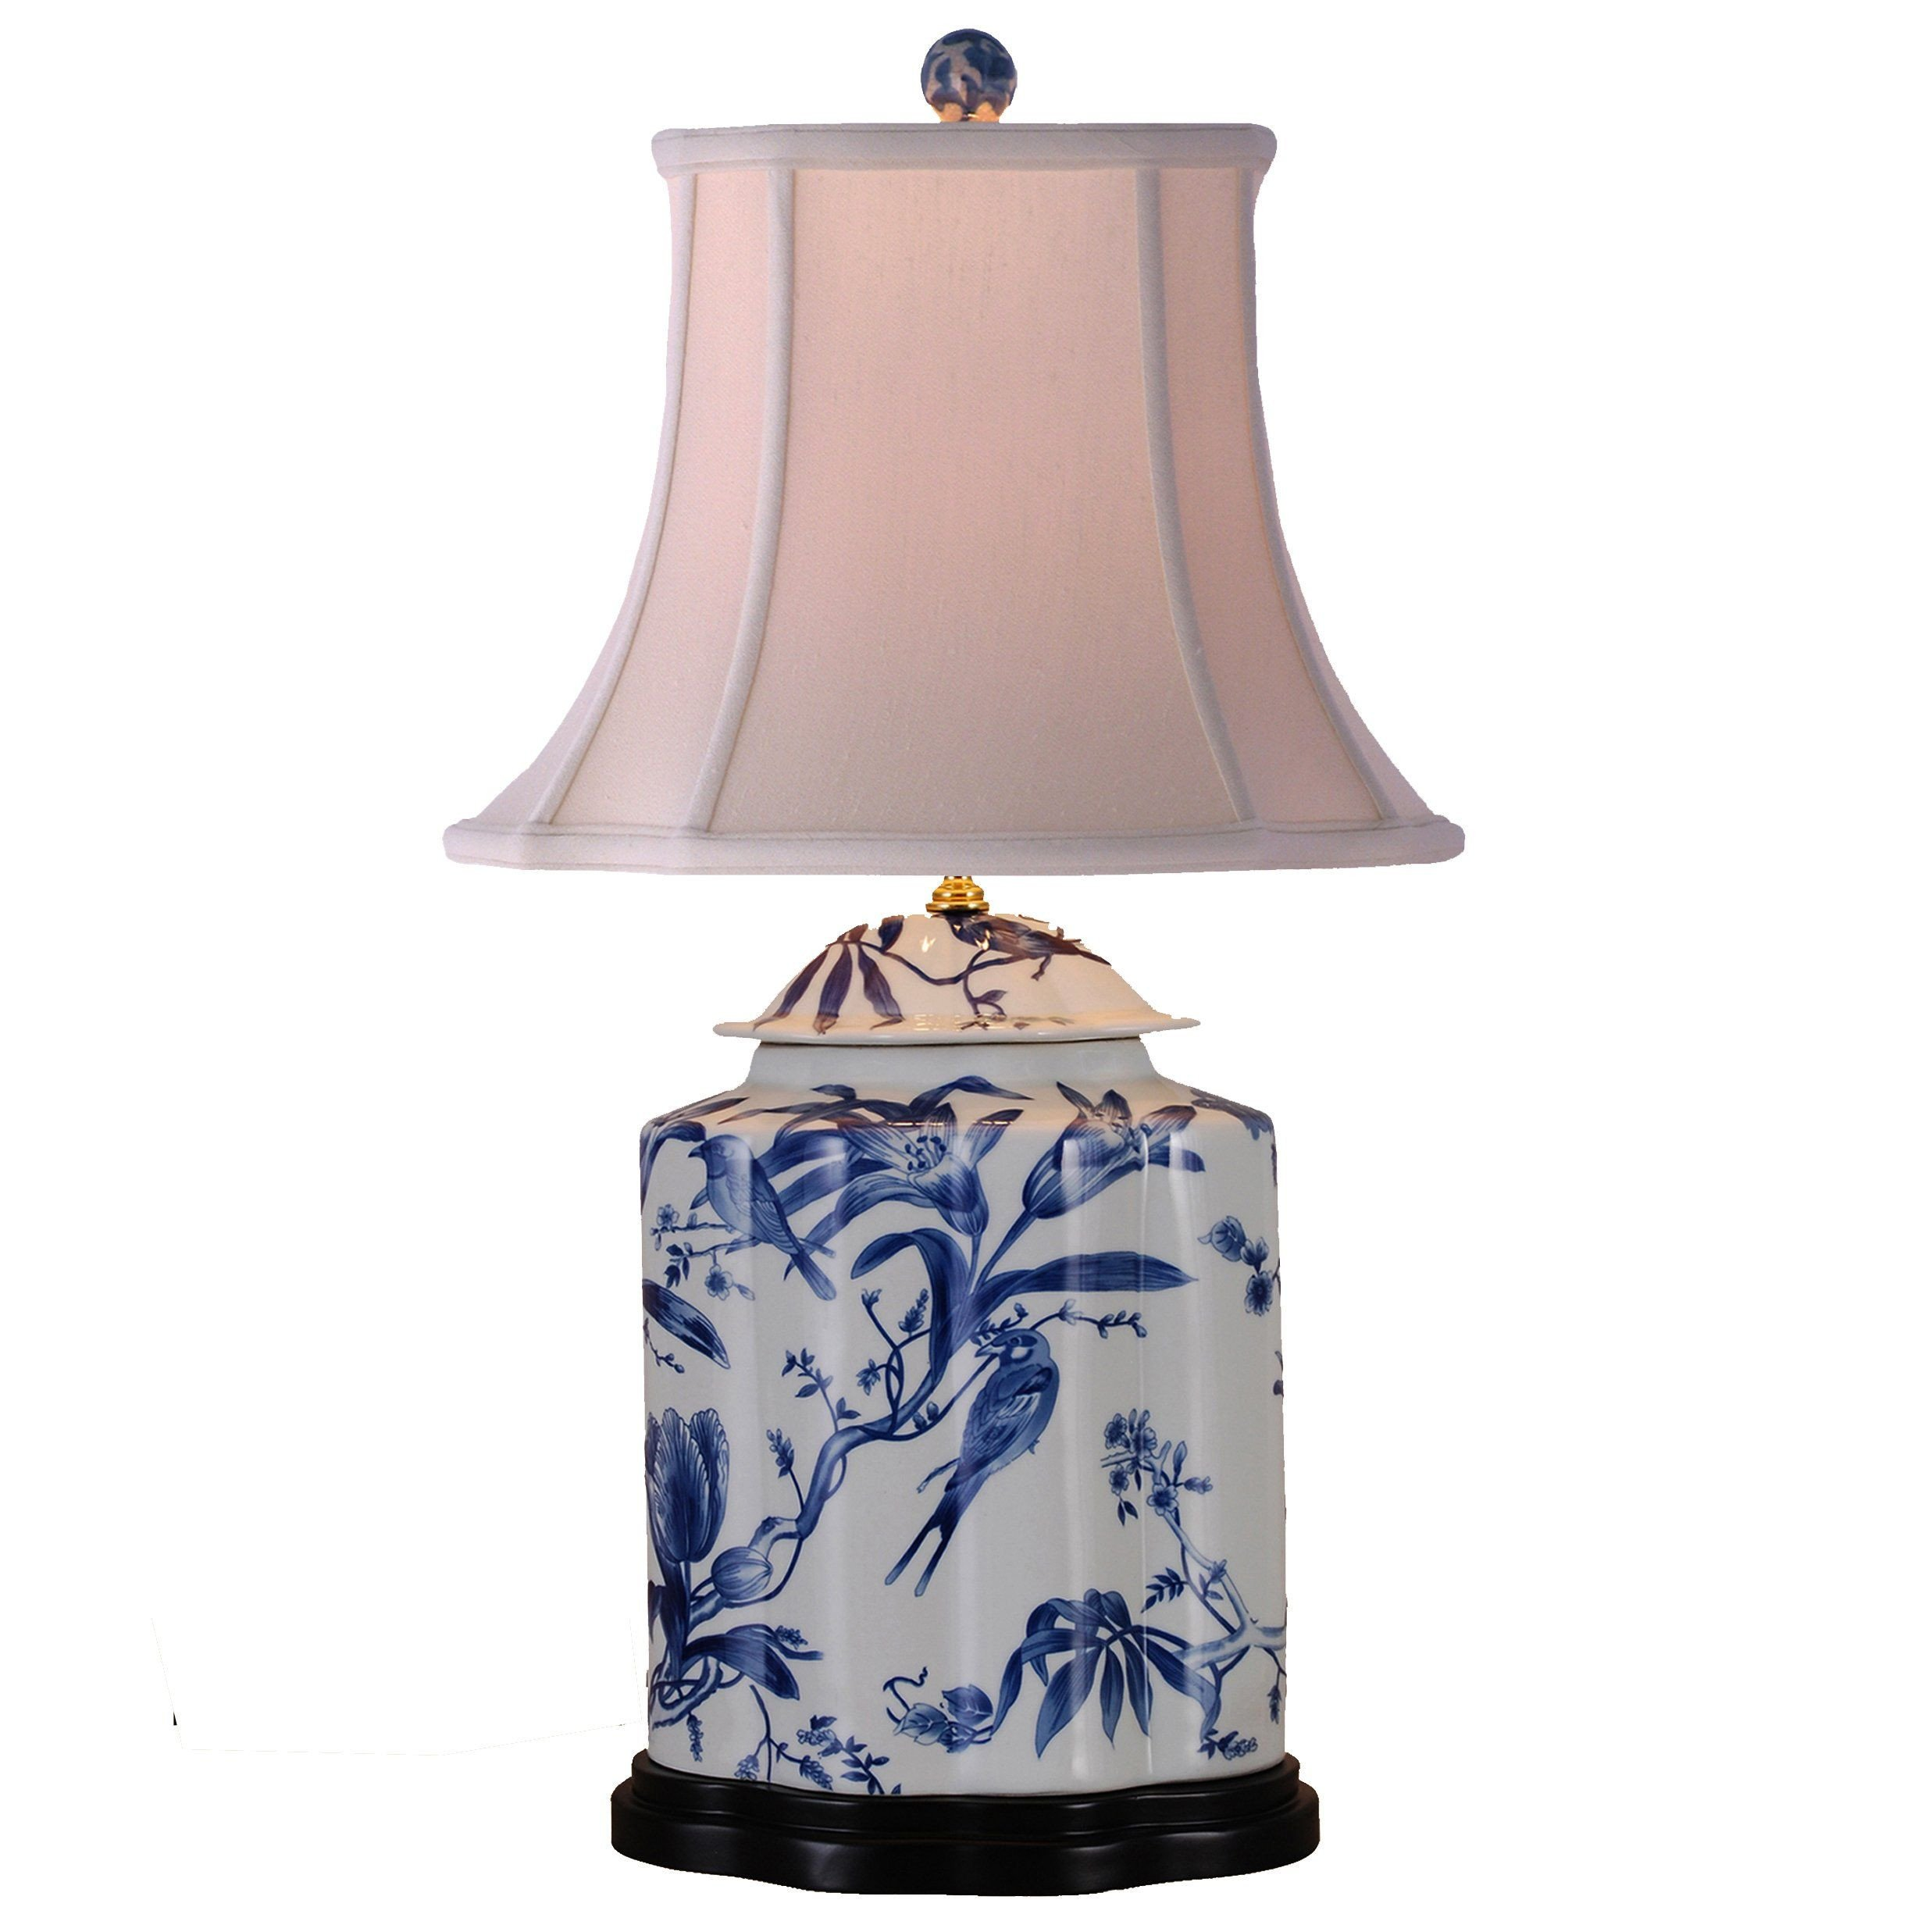 Blue Table Lamps Bedroom Luxury Paradise Birds Blue & White Porcelain Tea Jar Table Lamp In